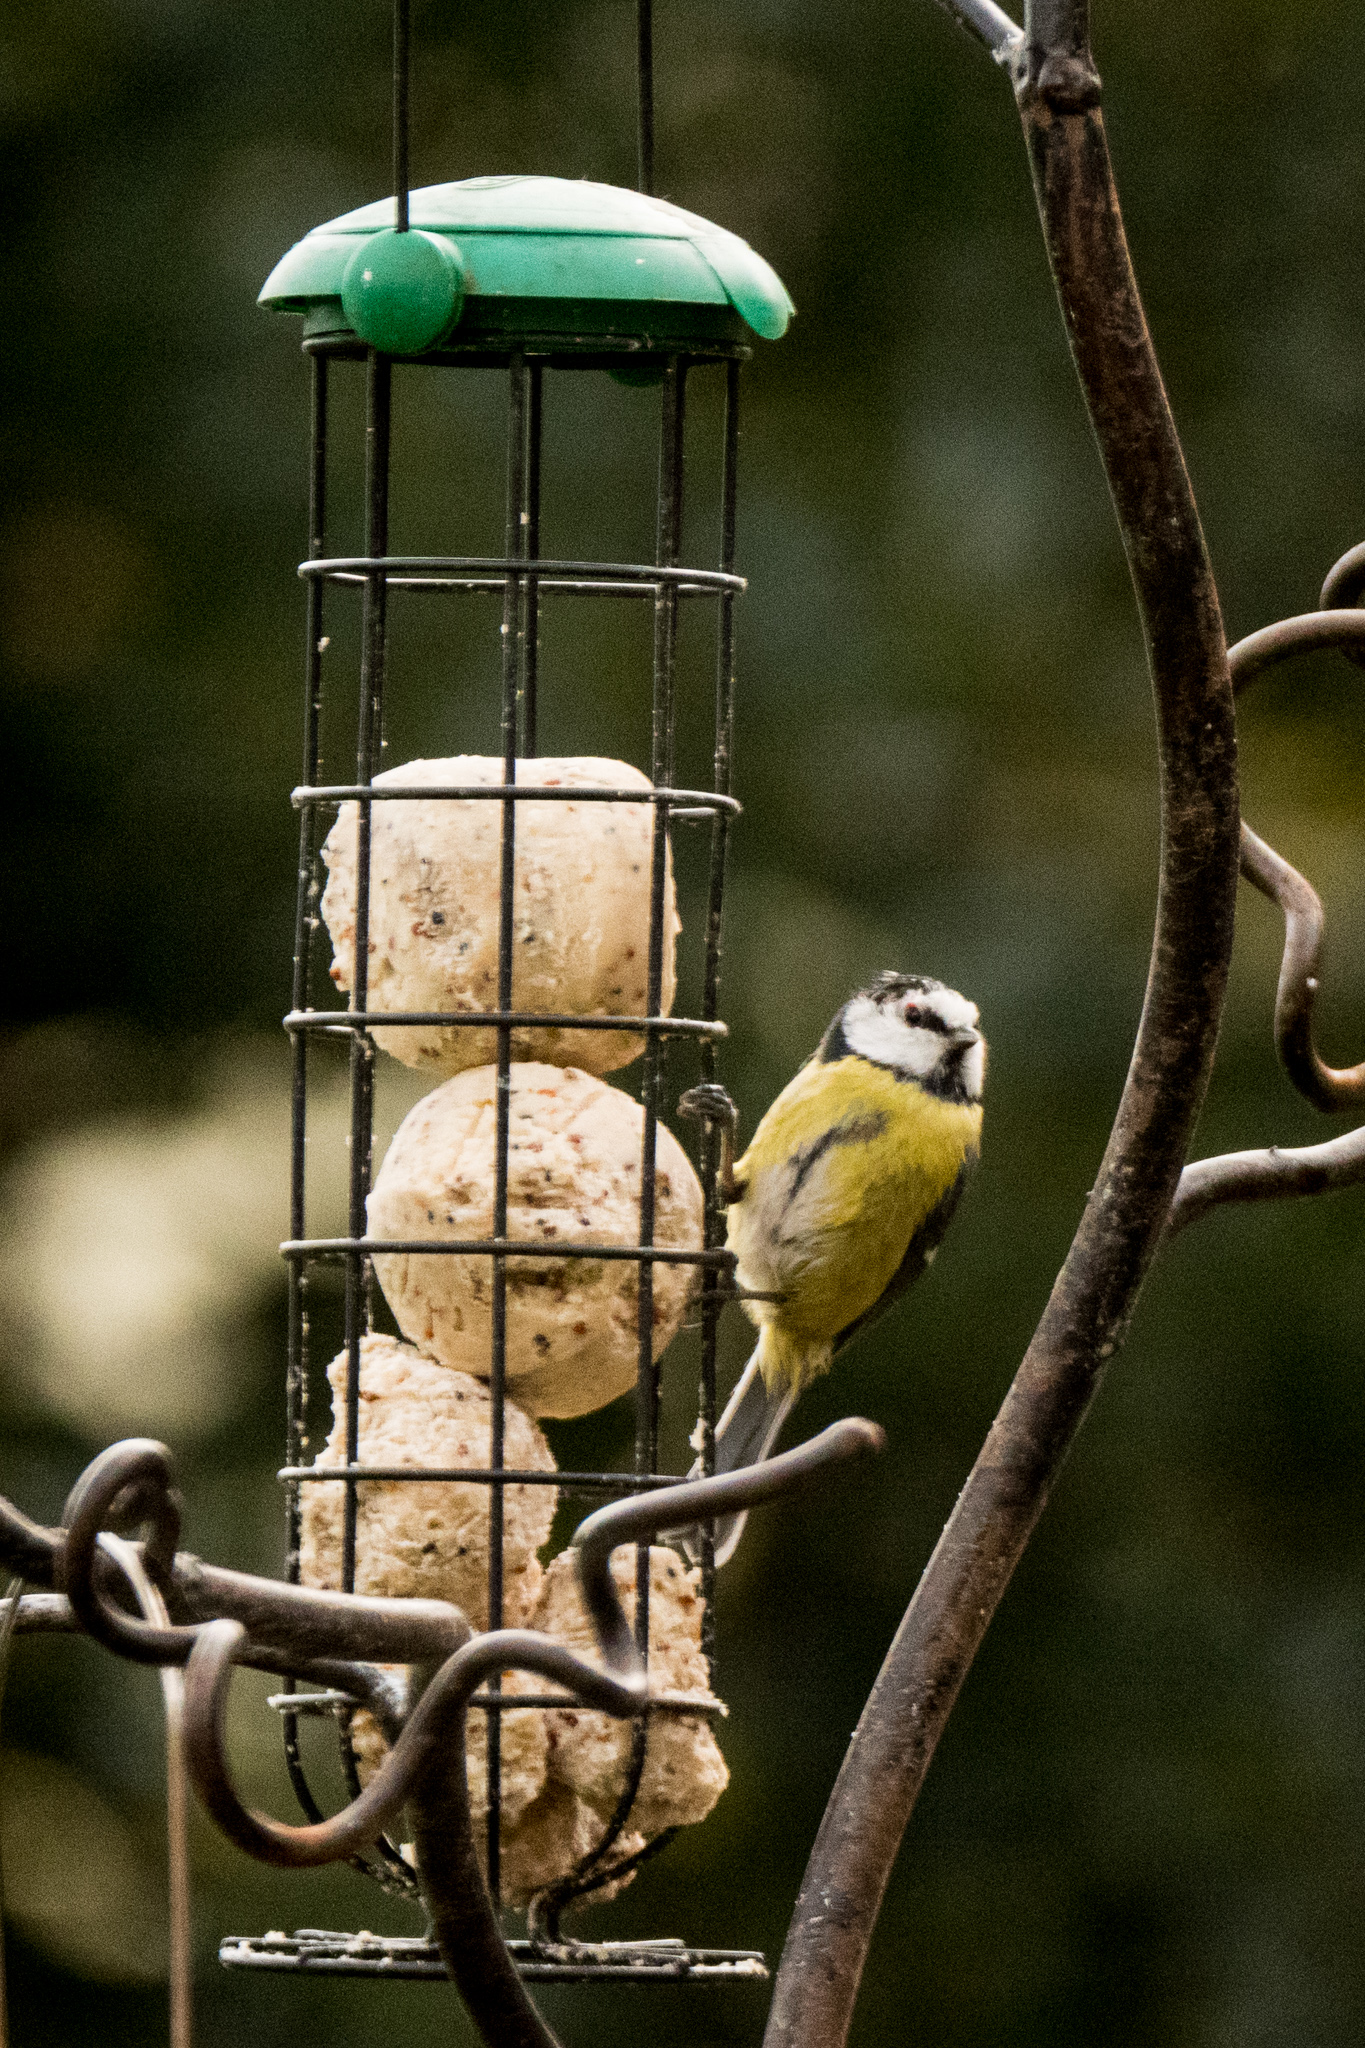 A bluetit tucking into the fatballs